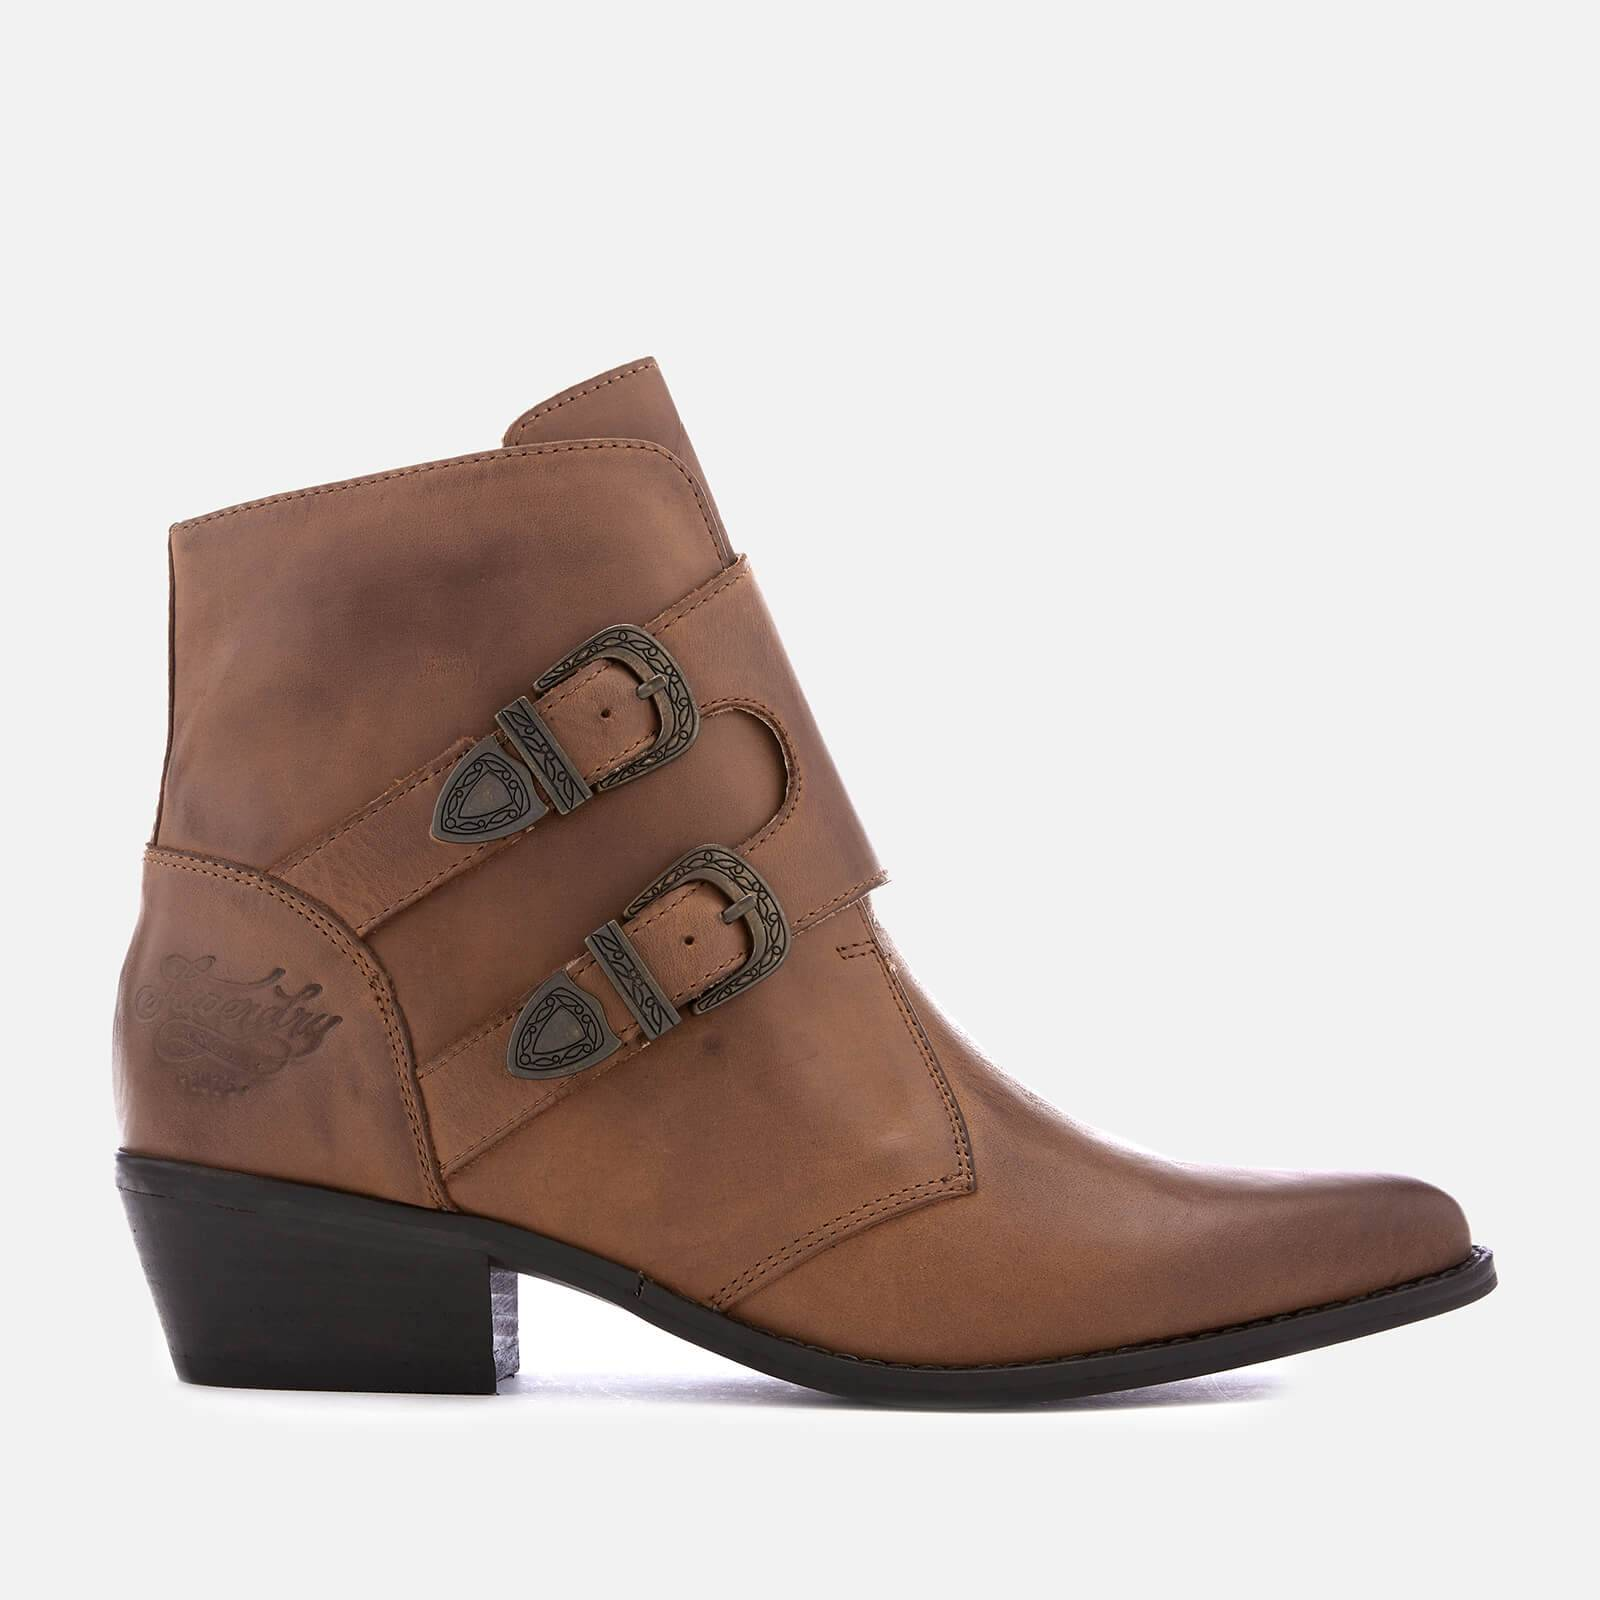 Superdry Women's Rodeo Monk Heeled Ankle Boots - Tan - UK 4 - Tan